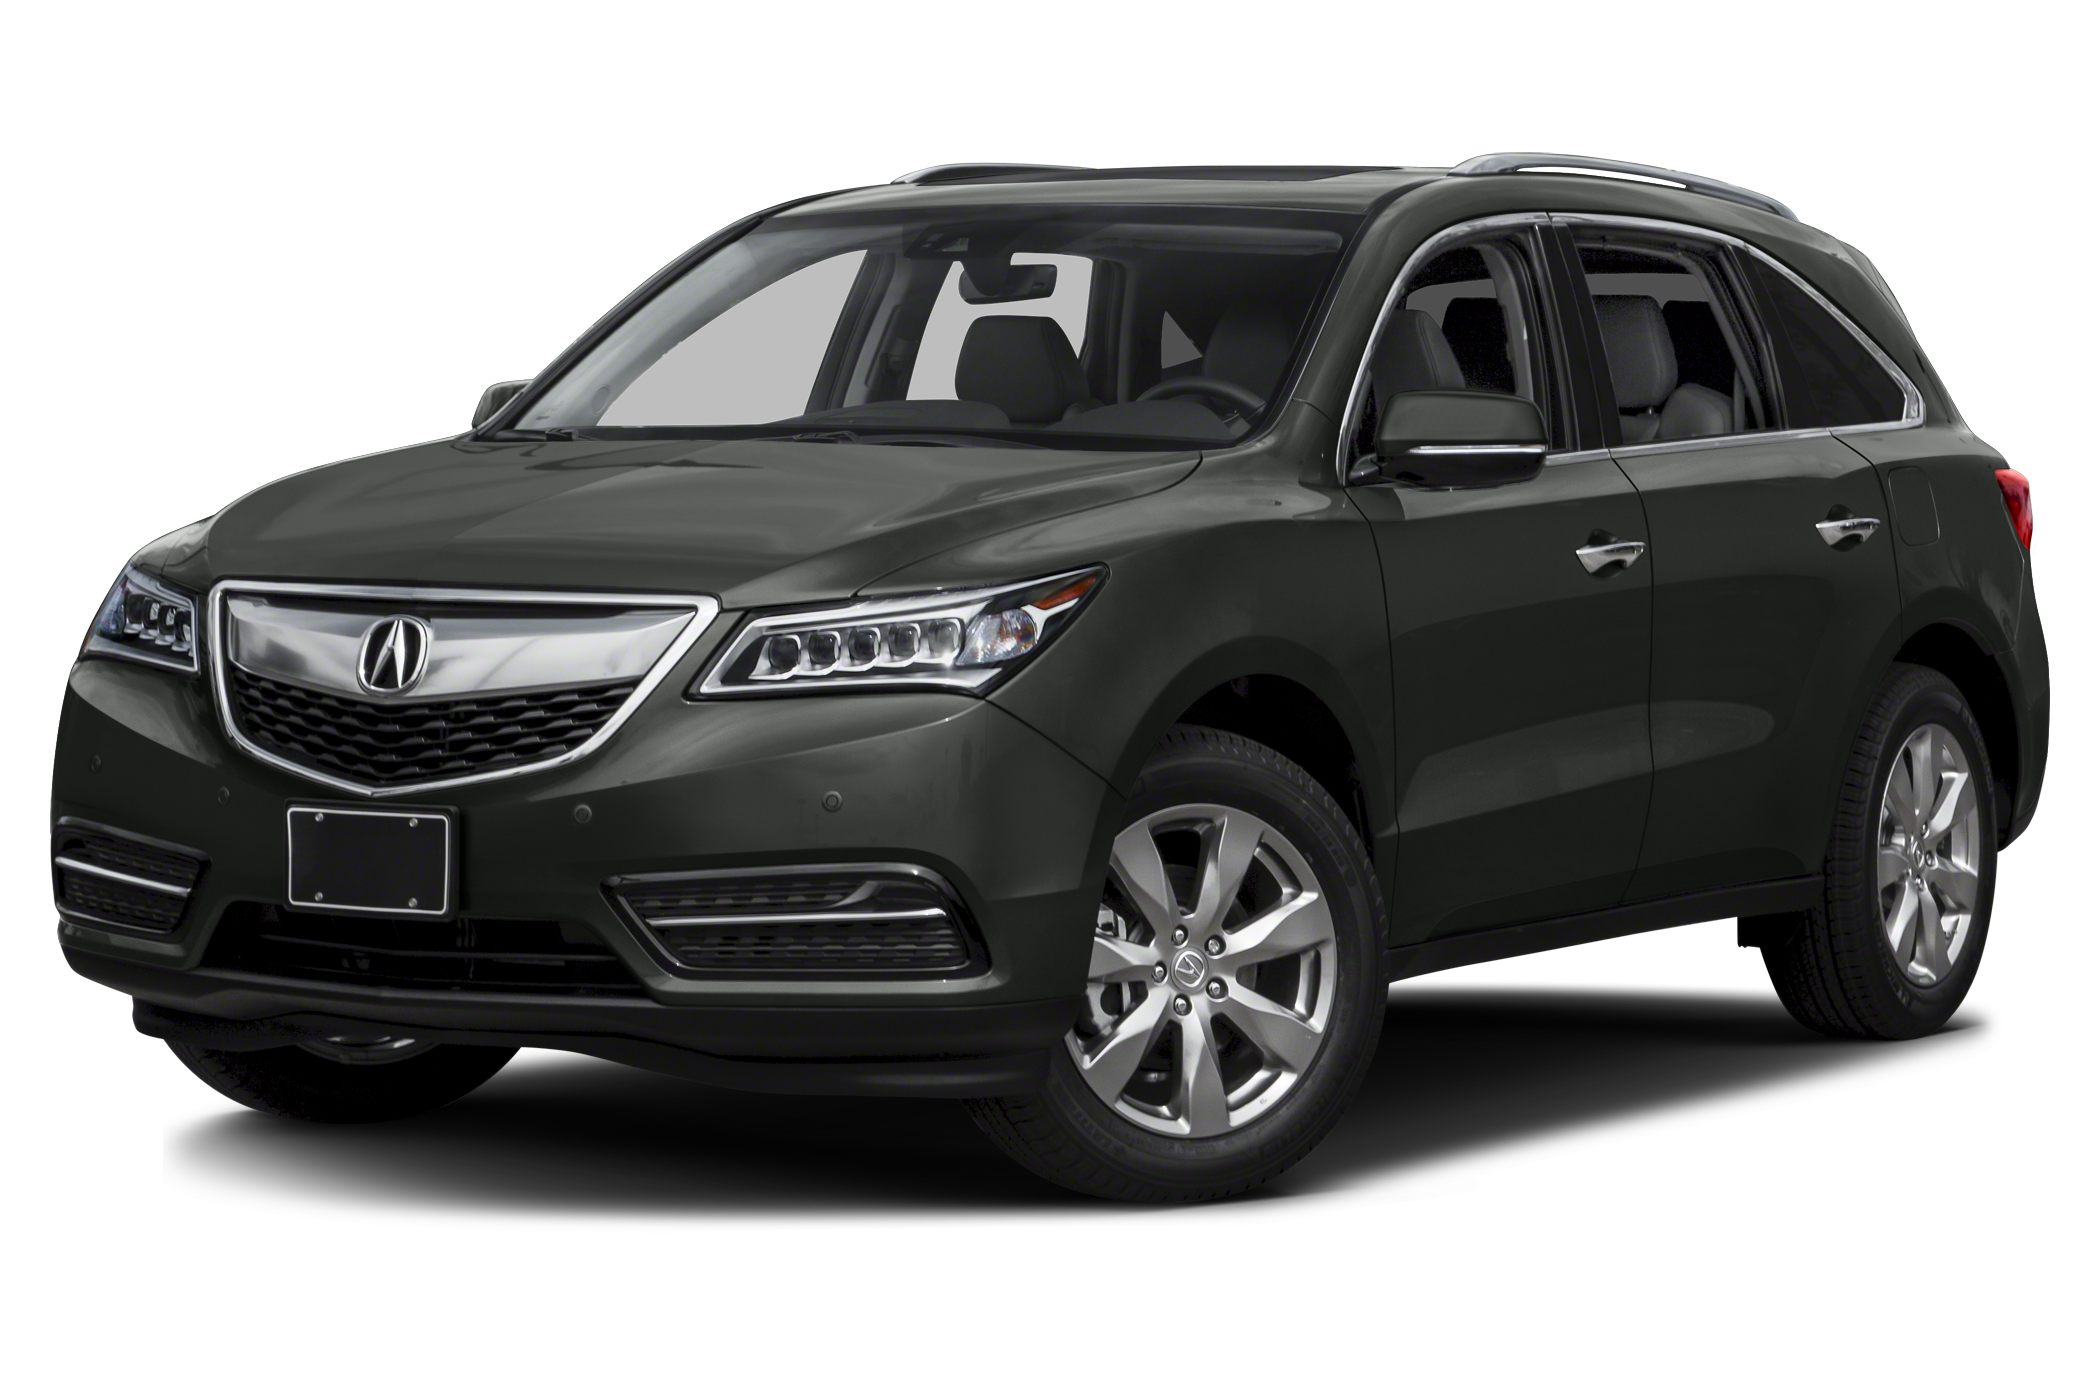 2016 Acura MDX 35 Advance The Acura MDX is as refined as it is sophisticated It is adorned with